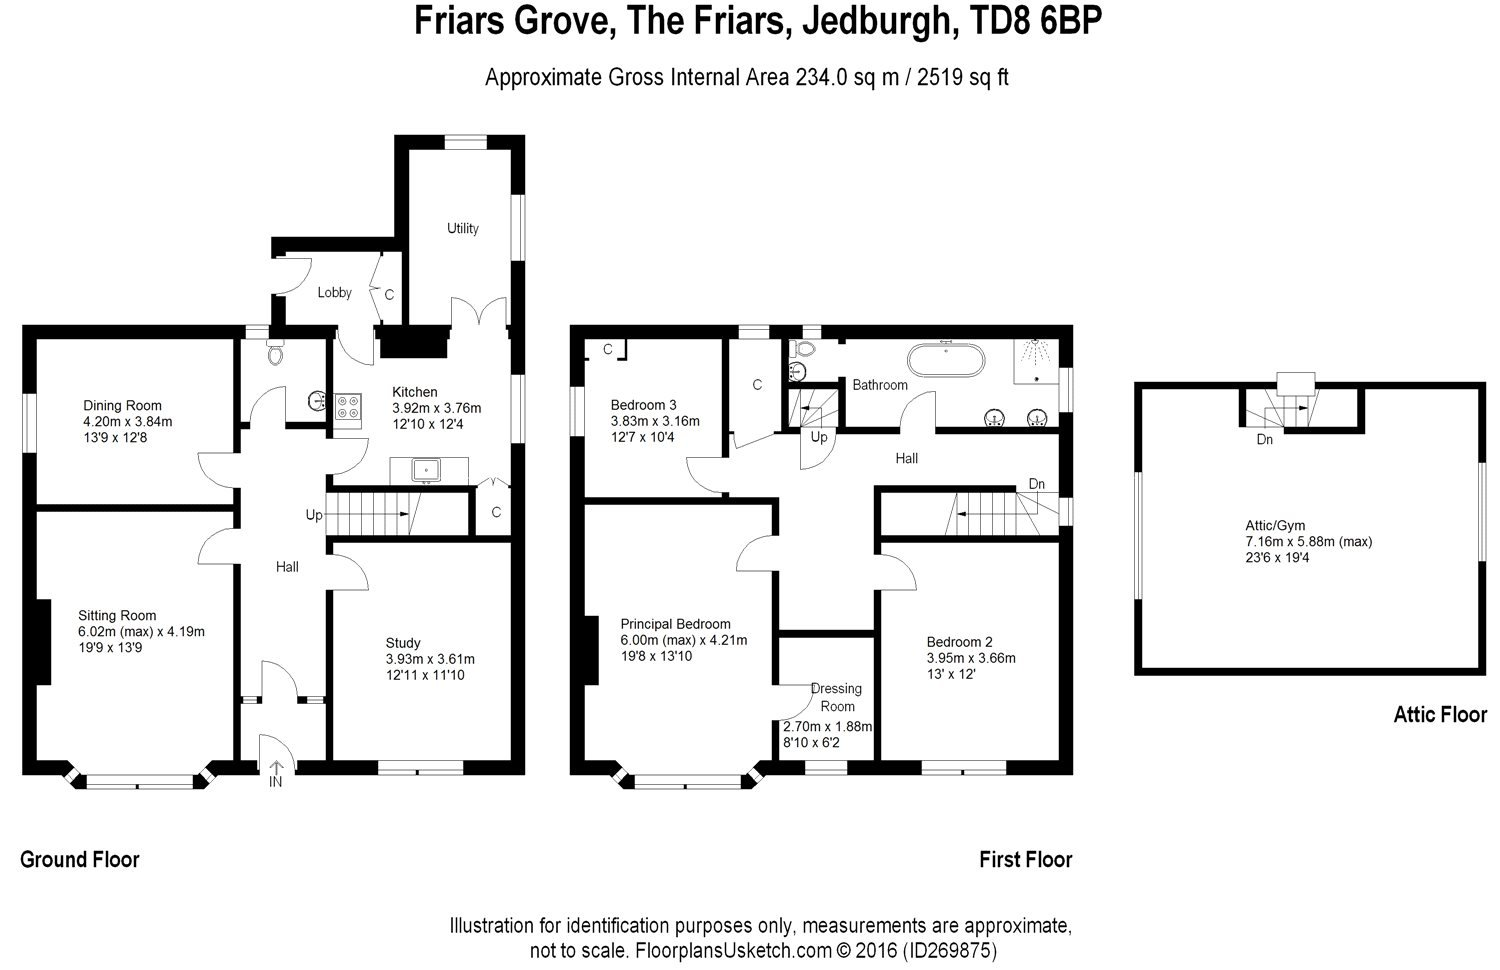 Floorplans for Friars Grove, The Friars, Jedburgh, TD8